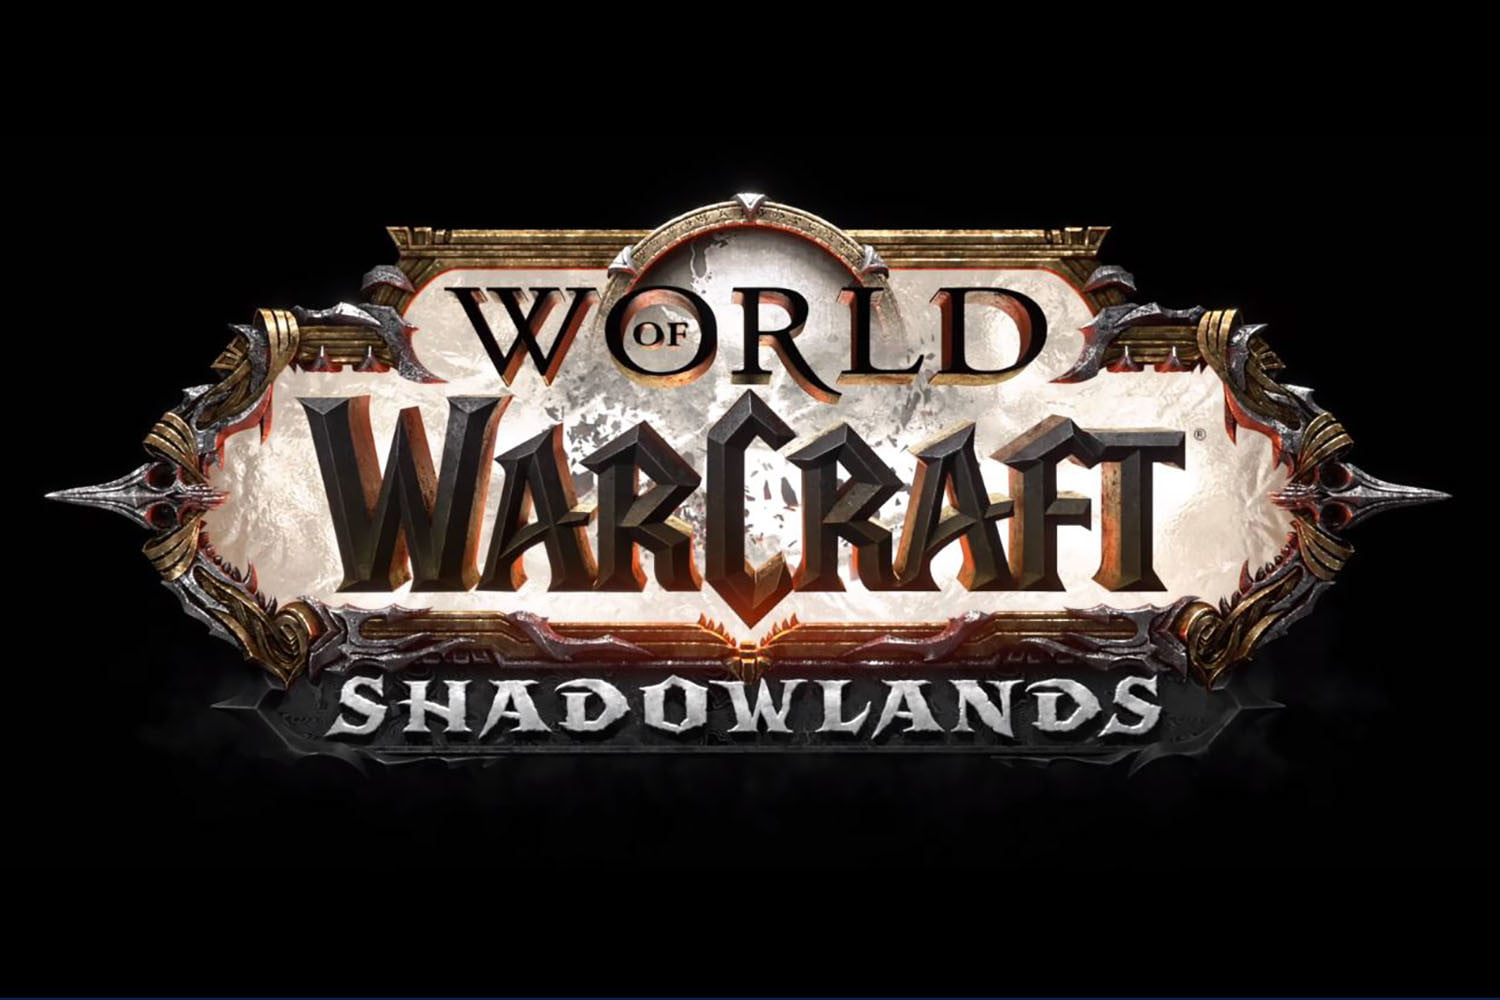 World of Warcraft Shadowlands announcement logo